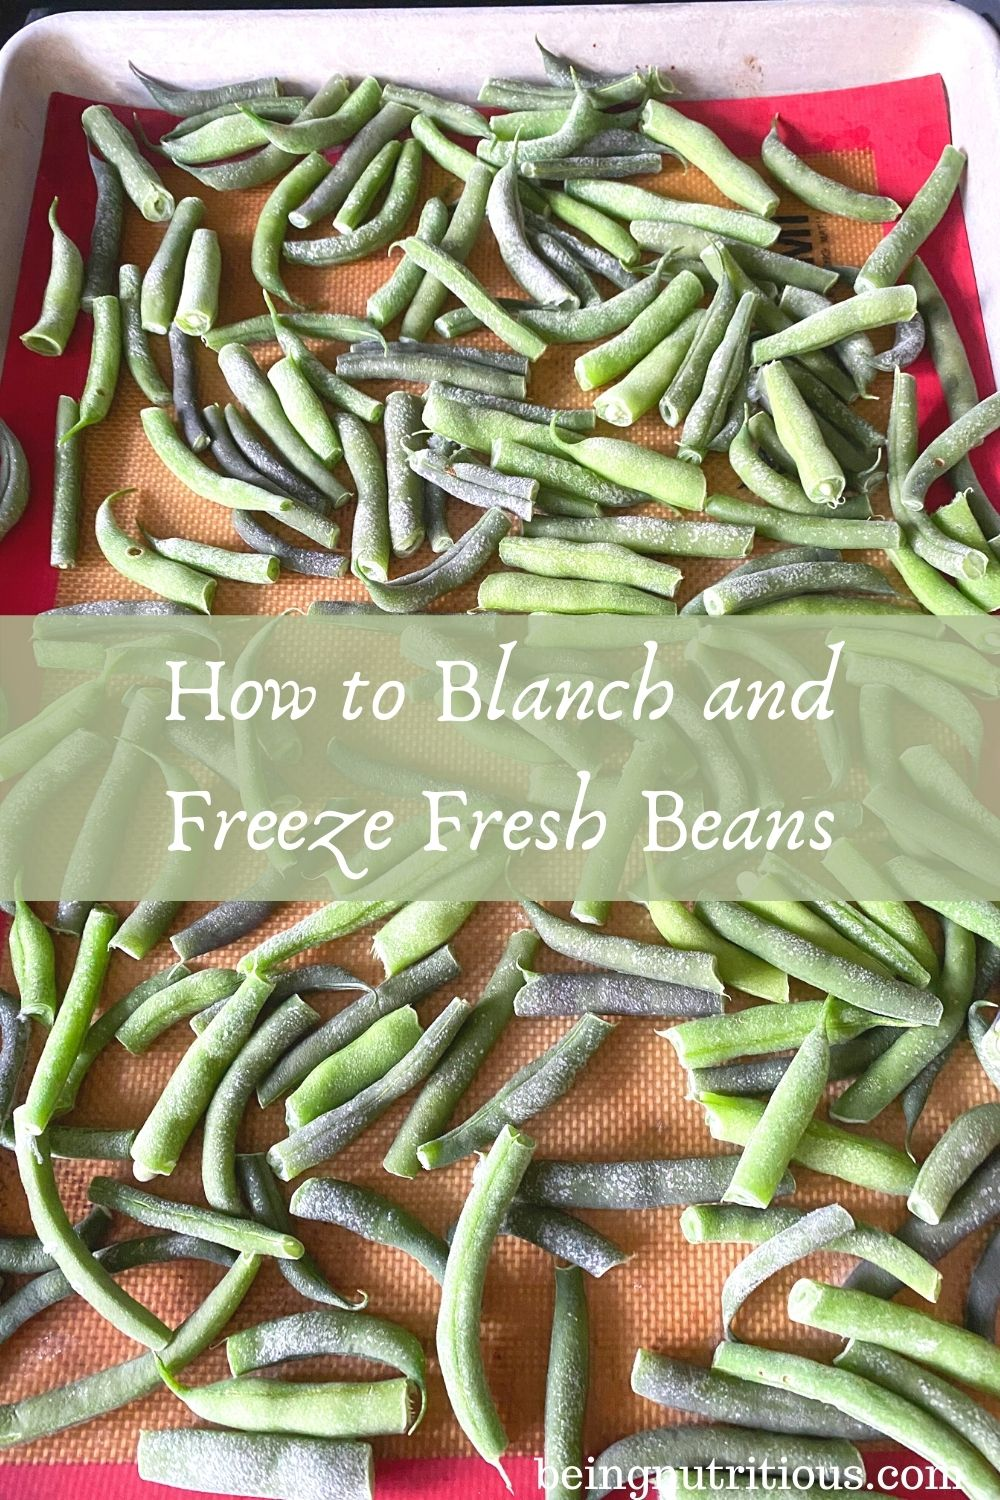 Frozen beans on a cookie sheet. Text overlay in a translucent green rectangle: How to Blanch and Freeze Fresh Beans.